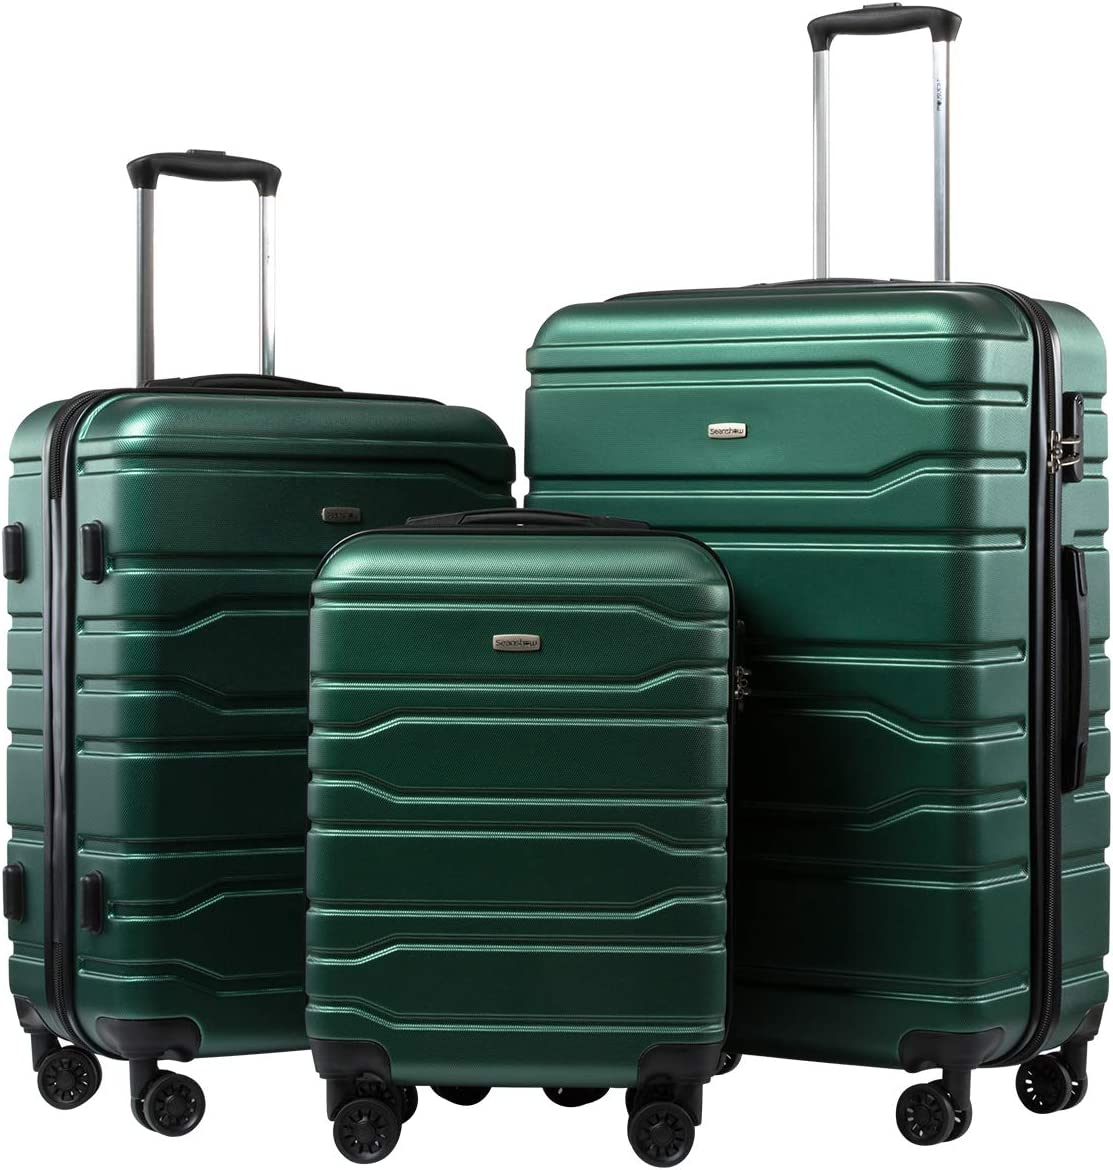 Seanshow Suitcase 3 Piece Set Luggage Set Spinner Suitcase 20 24 28 army green